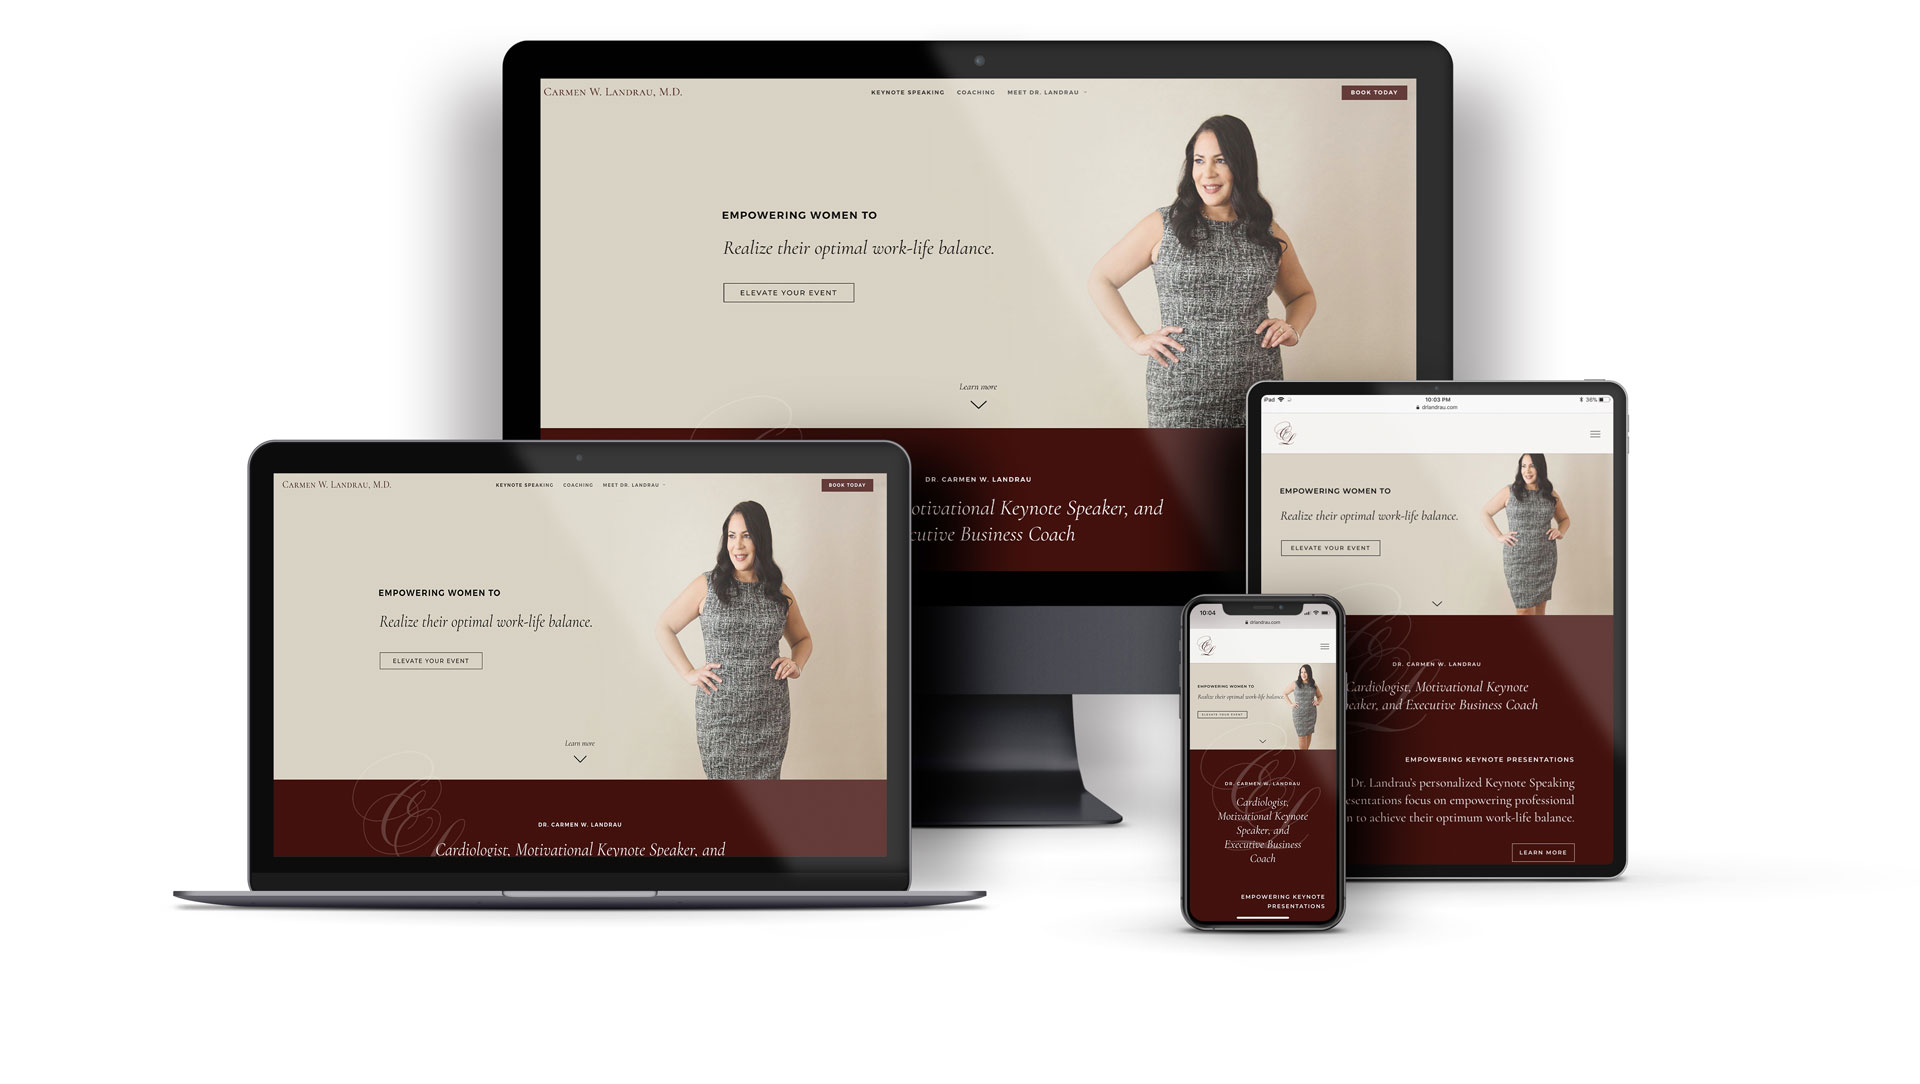 Whiskey and Red Small Business Branding and Website Design Packages - Web desktop ipad iphone Mockup for Dr Carmen Landrau - motivational keynote speaker